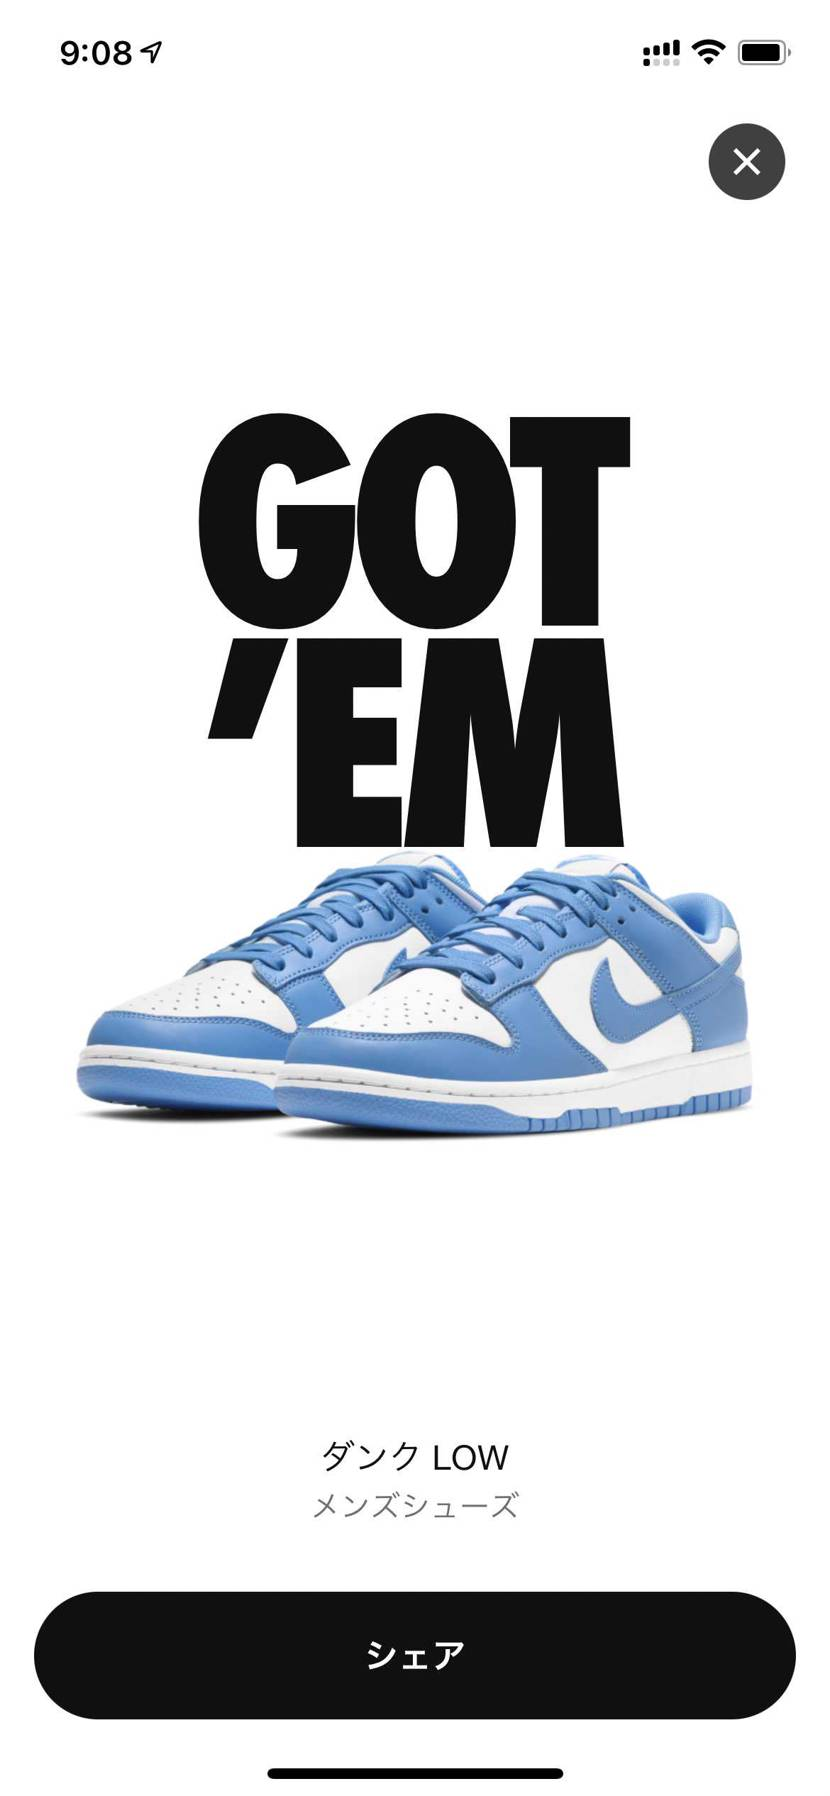 DUNK LOW は初!(◎_◎;)